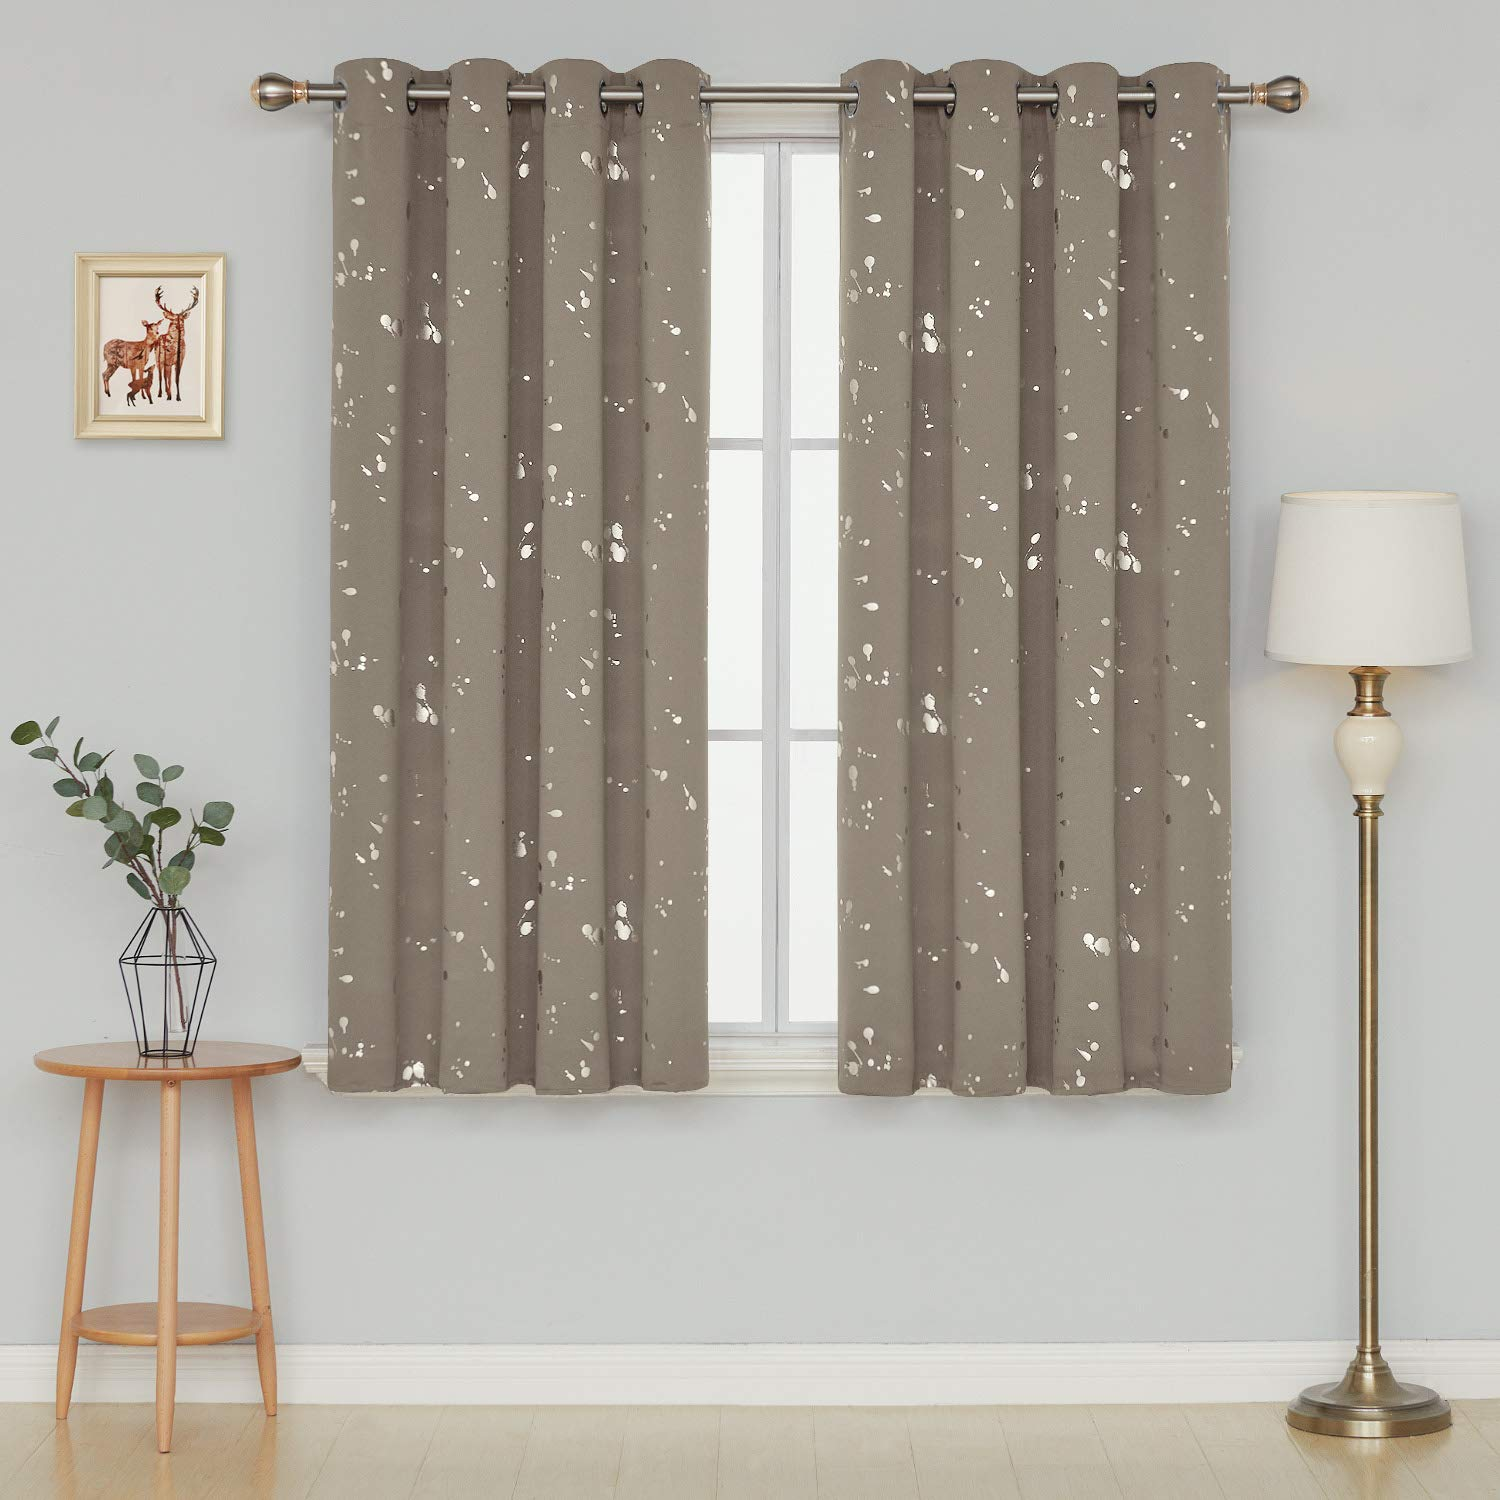 Deconovo Super Soft Thermal Curtains Foil Dots Printed Curtains Eyelet Blackout Curtains for Kids Bedroom Khaki 140x175cm One Pair